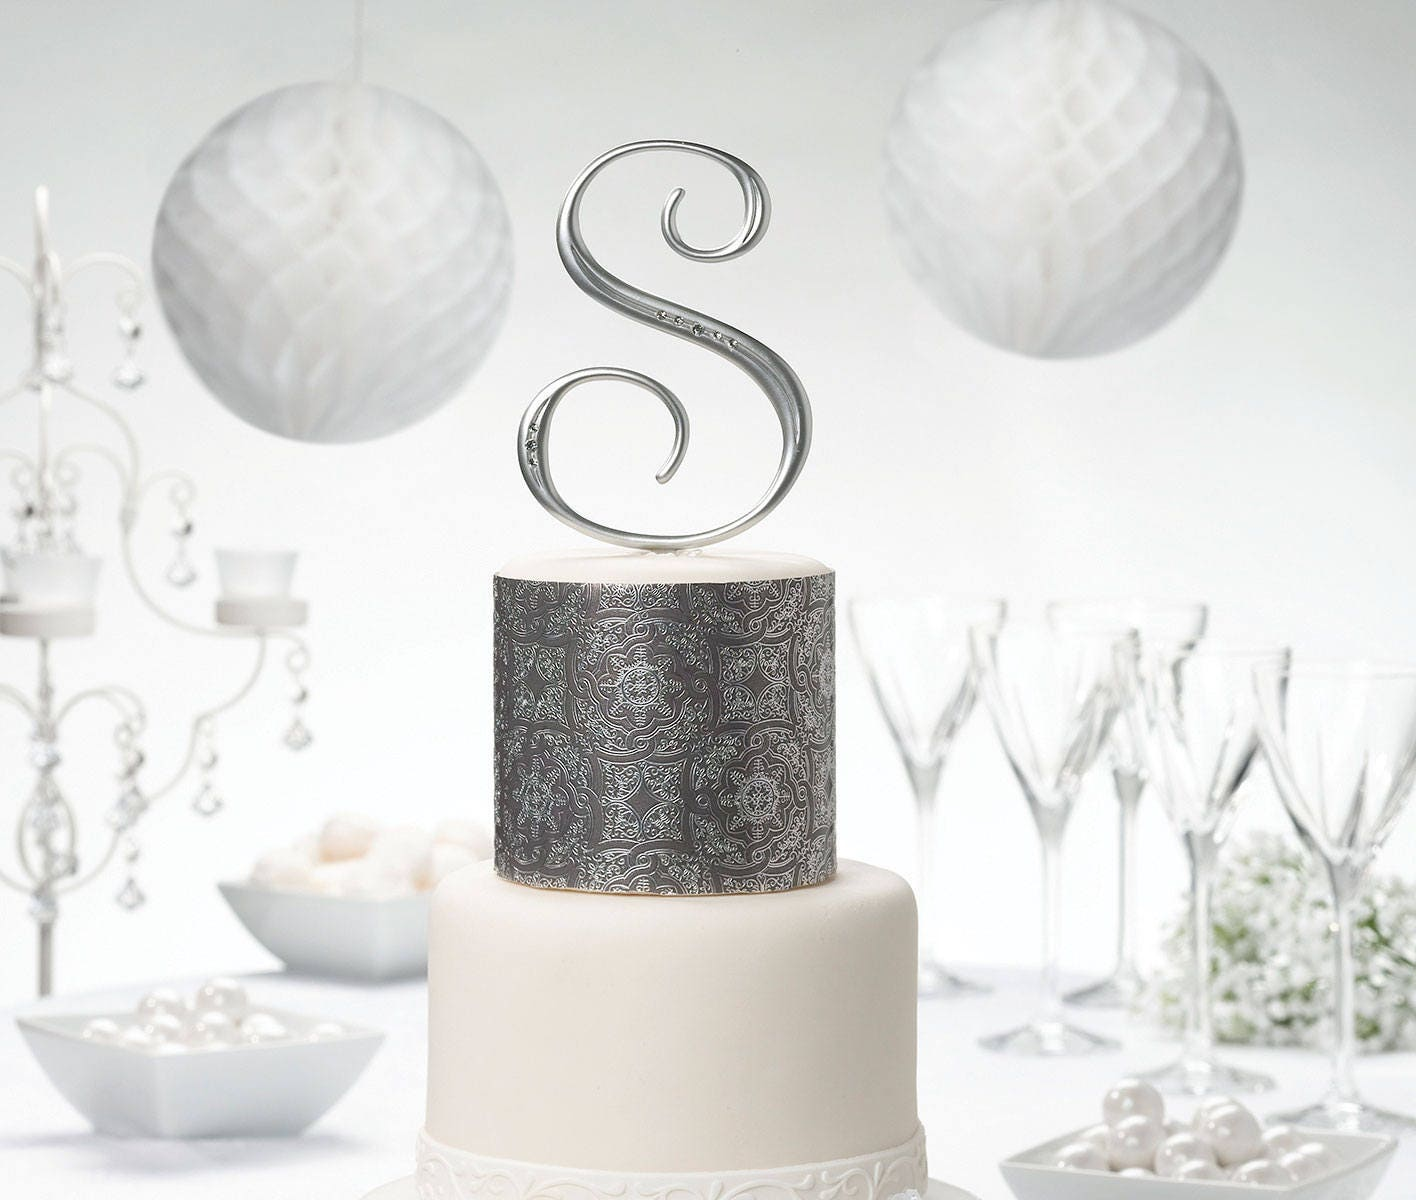 Cake Top Letters, Wedding Cake Tops, Cake Topper Decorations ...